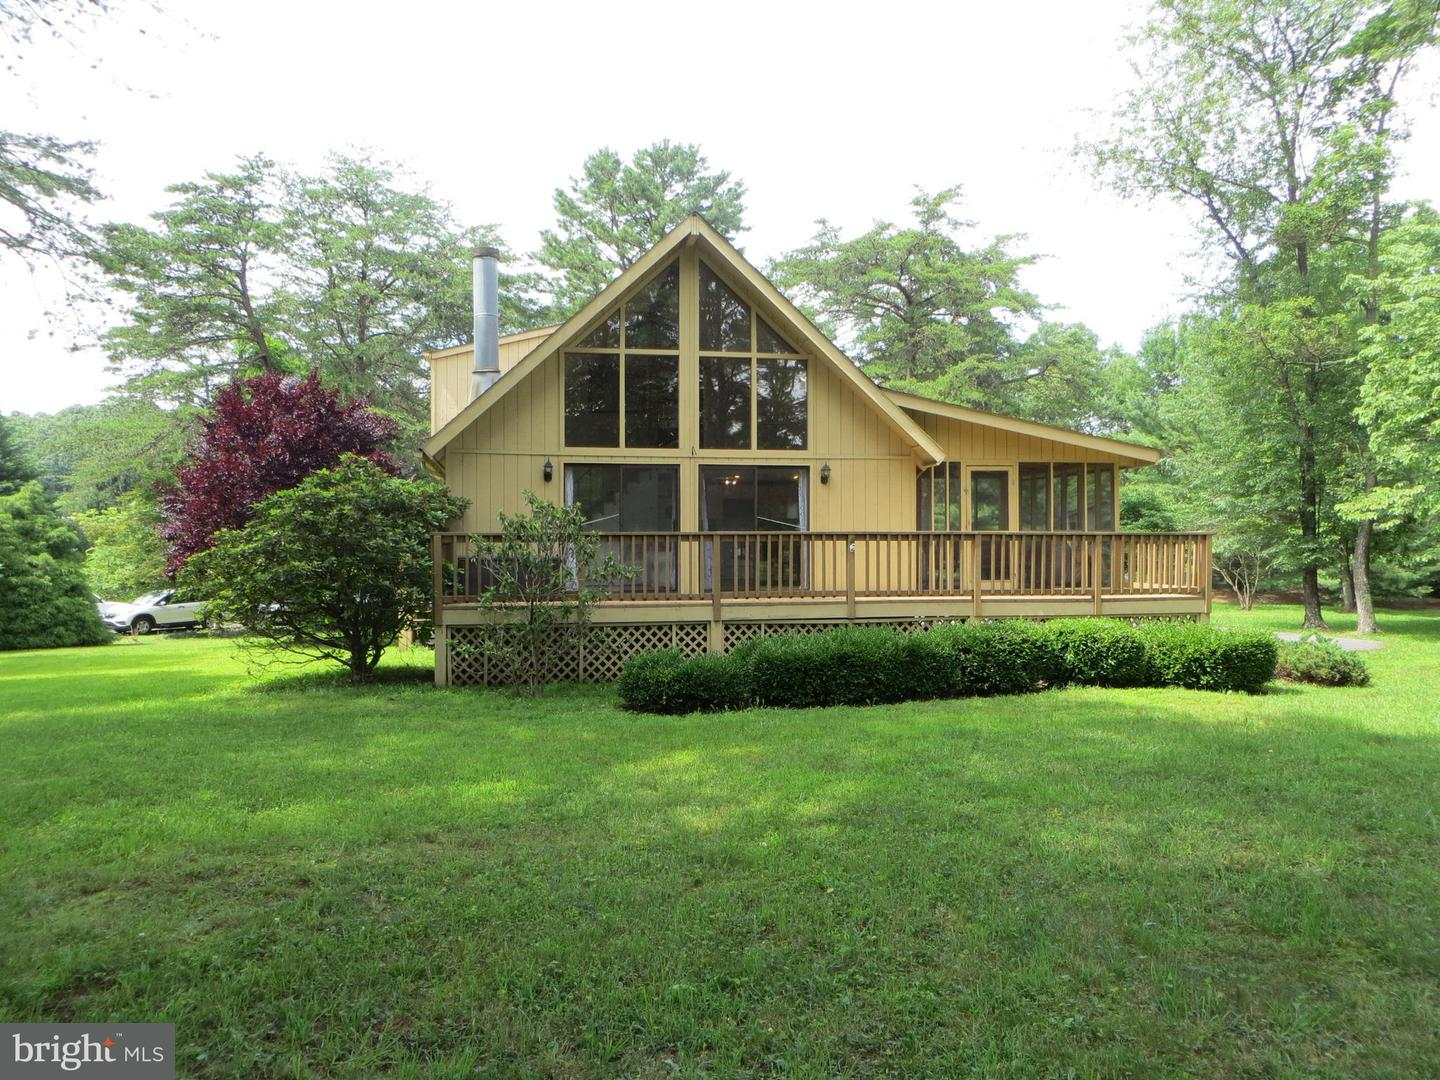 283 The Woods Road Hedgesville, WV 25427